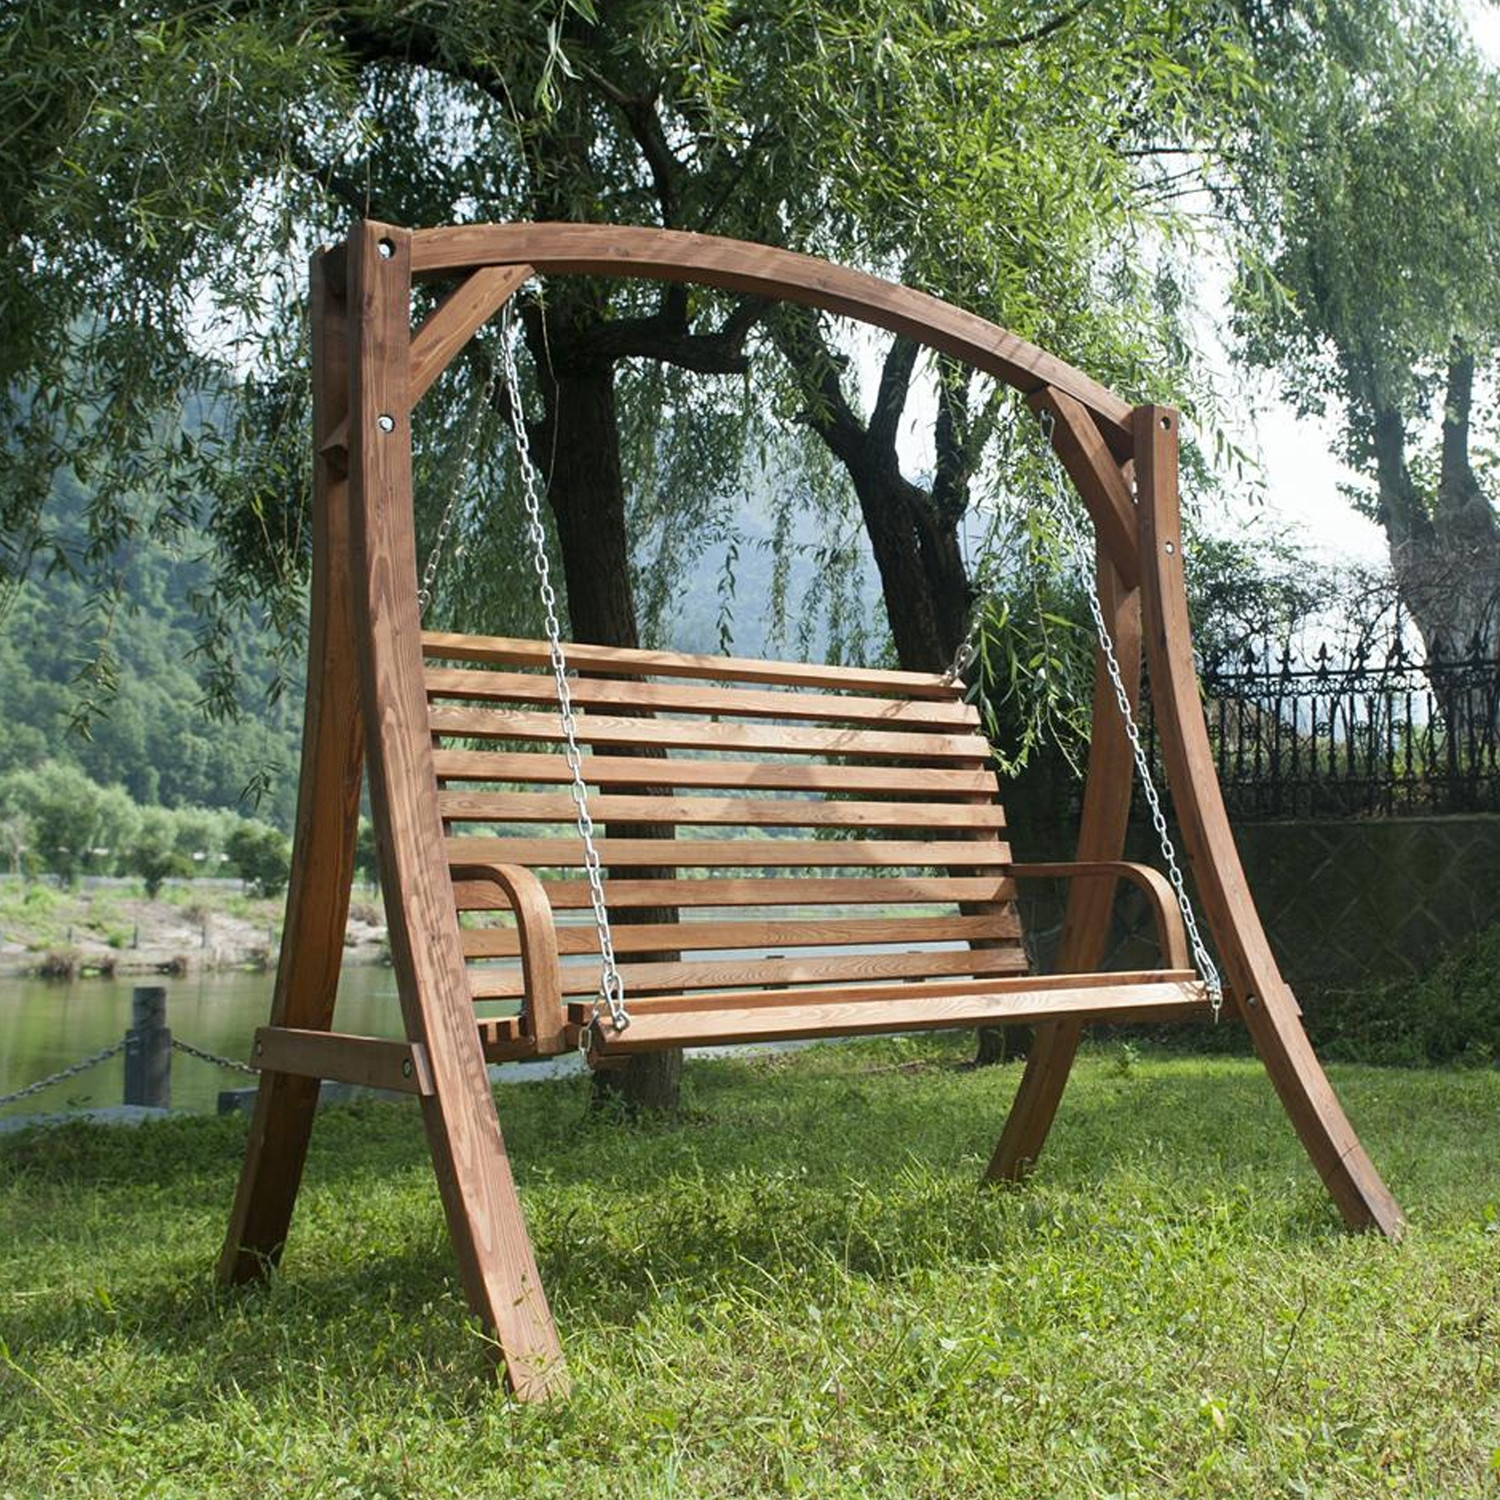 Patio Swing Chair With Stand Lukhq Cnxconsortium Outdoor In Wooden Garden Swing Seats Outdoor Furniture Fun Wooden Garden Swing Seats Outdoor Furniture